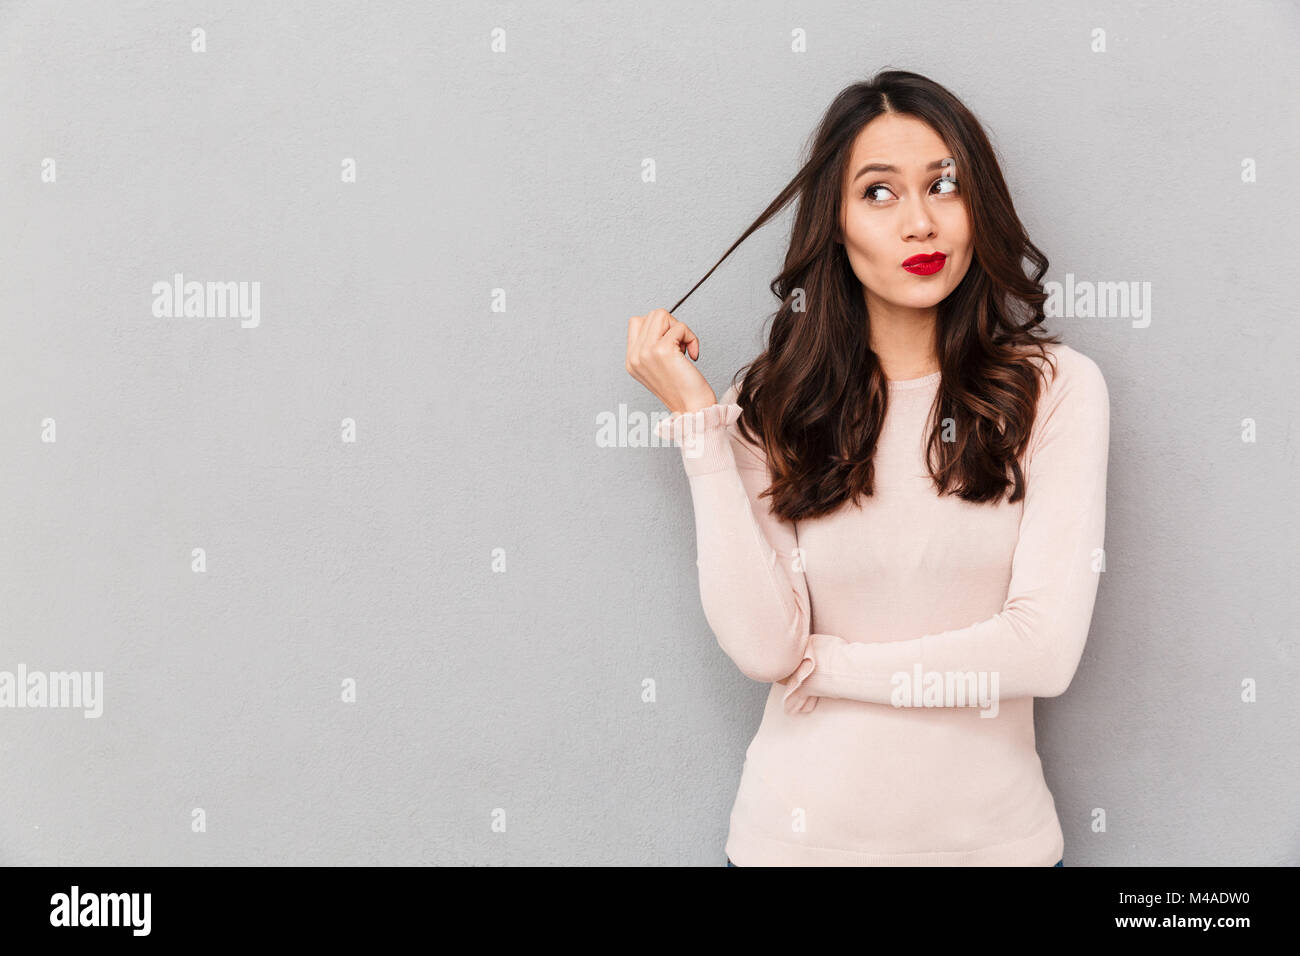 Portrait of young tricky woman touching lock of hair meaning she has something in mind with facial expressions, - Stock Image